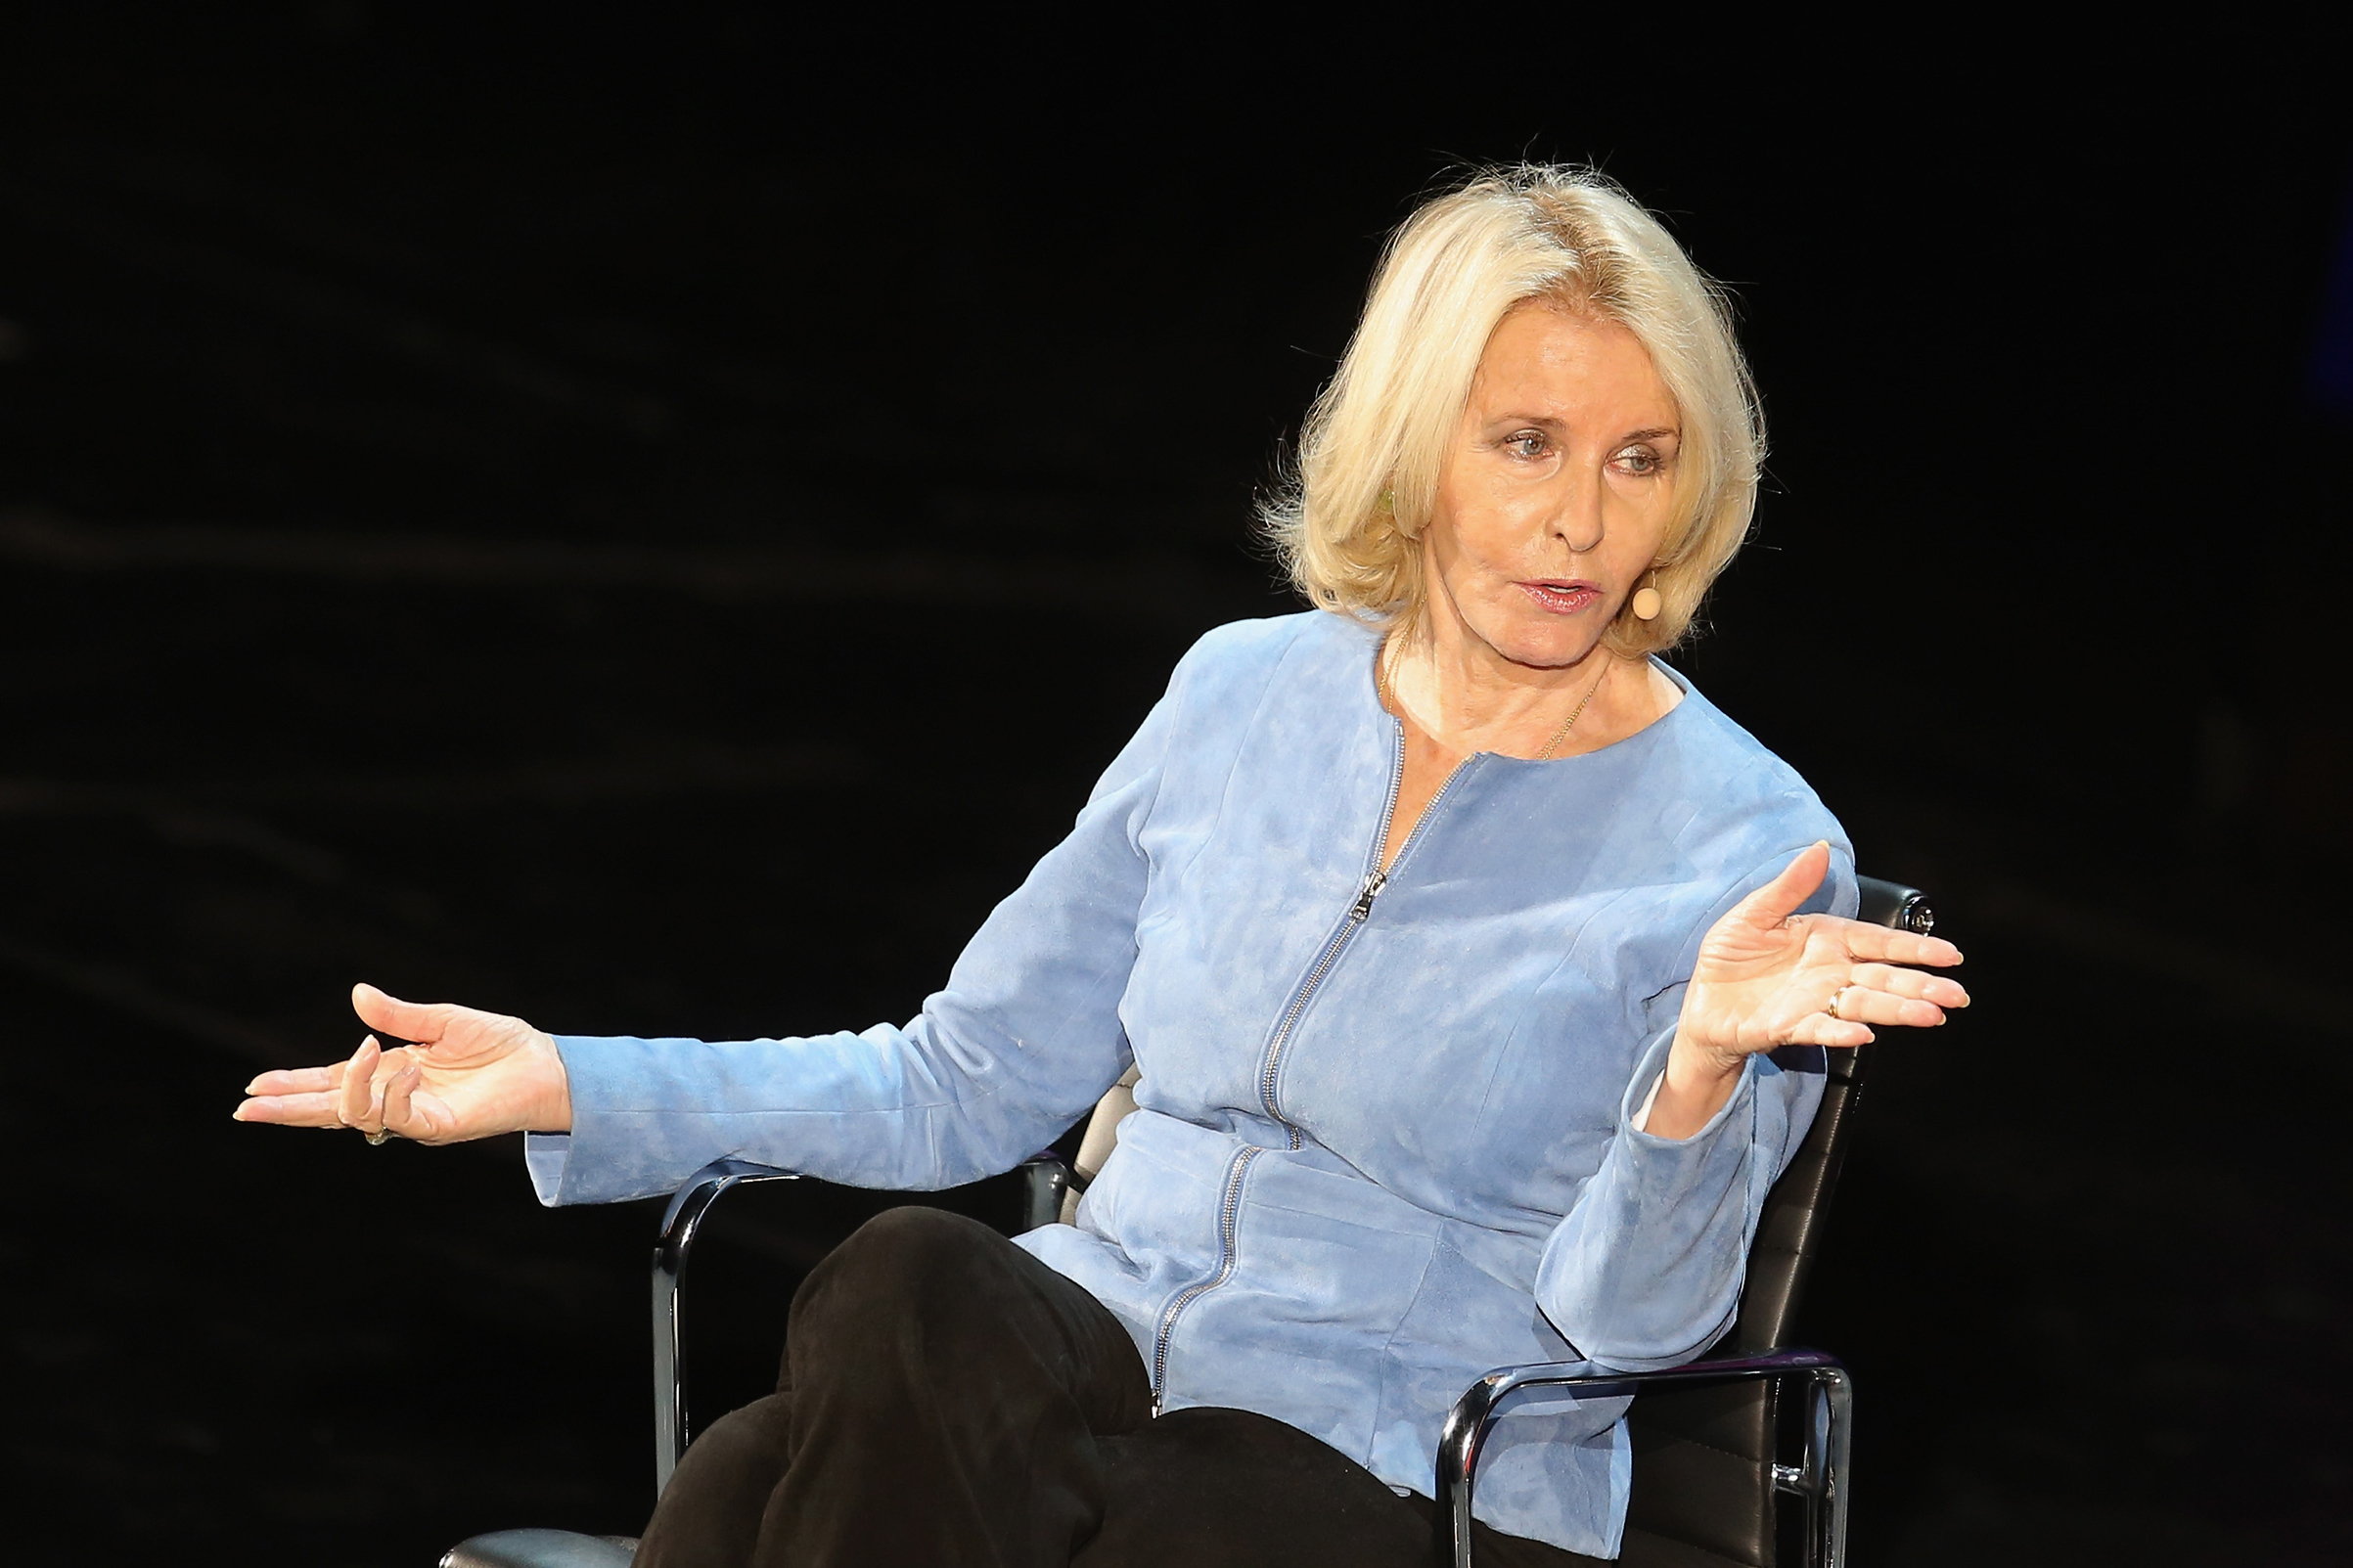 Sally Quinn speaks onstage at The Lasting Impact of Anita Hill during Tina Brown's 7th Annual Women in the World Summit at David H. Koch Theater at Lincoln Center on April 8, 2016 in New York City.